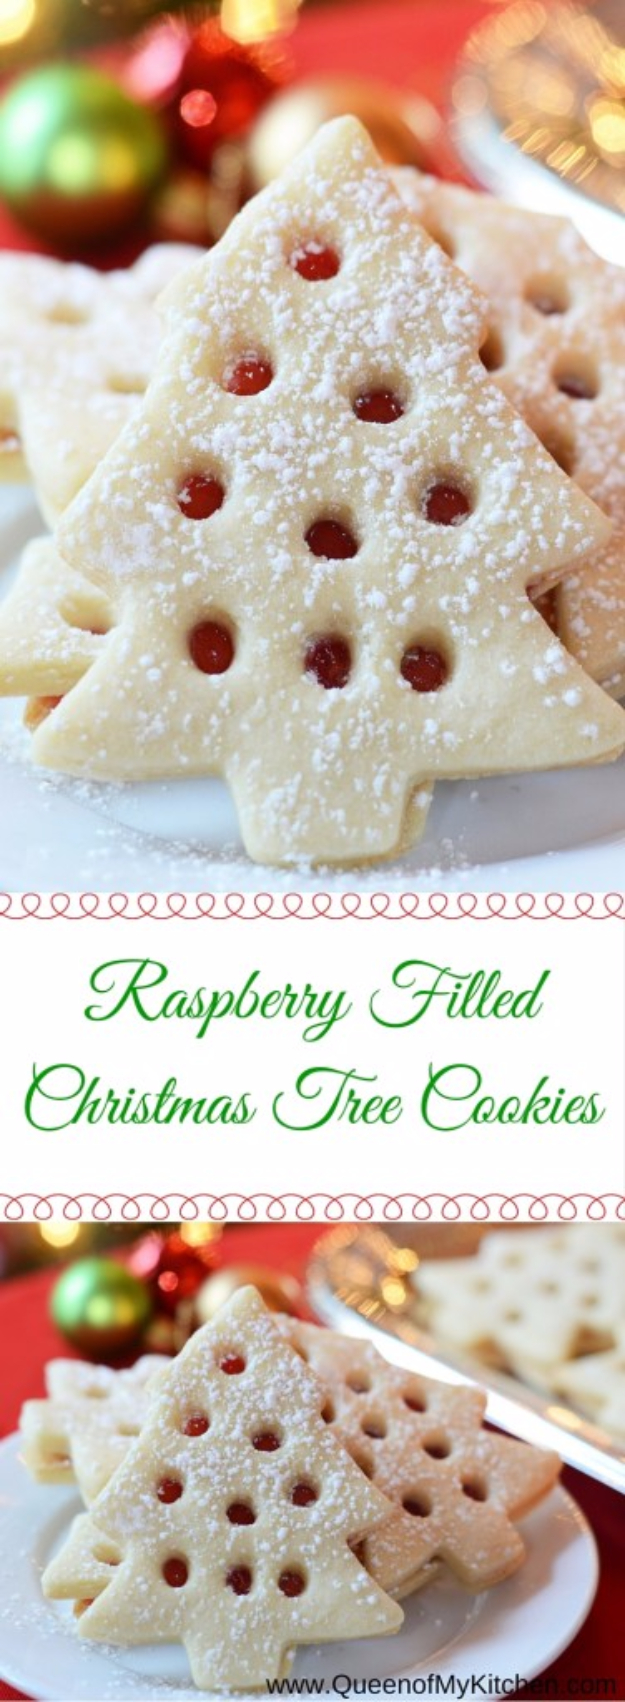 38 Best Recipes for Christmas Cookies